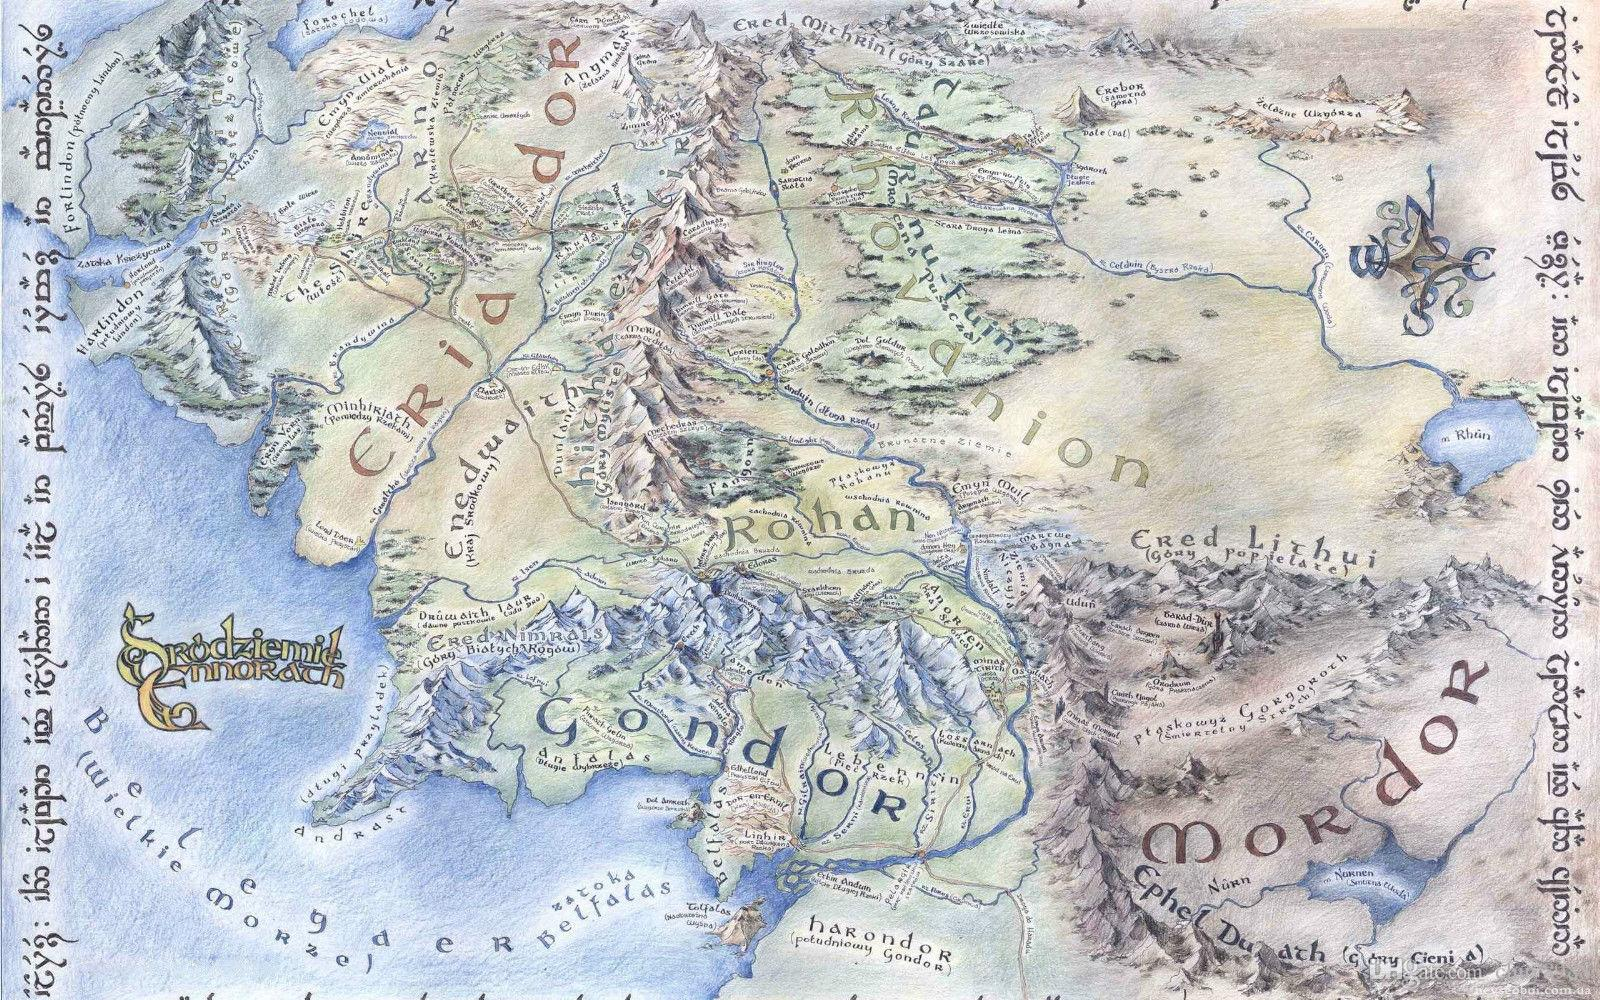 Middle Earth Map Art Silk Print Poster 24x36inch60x90cm 083 Uk 2019